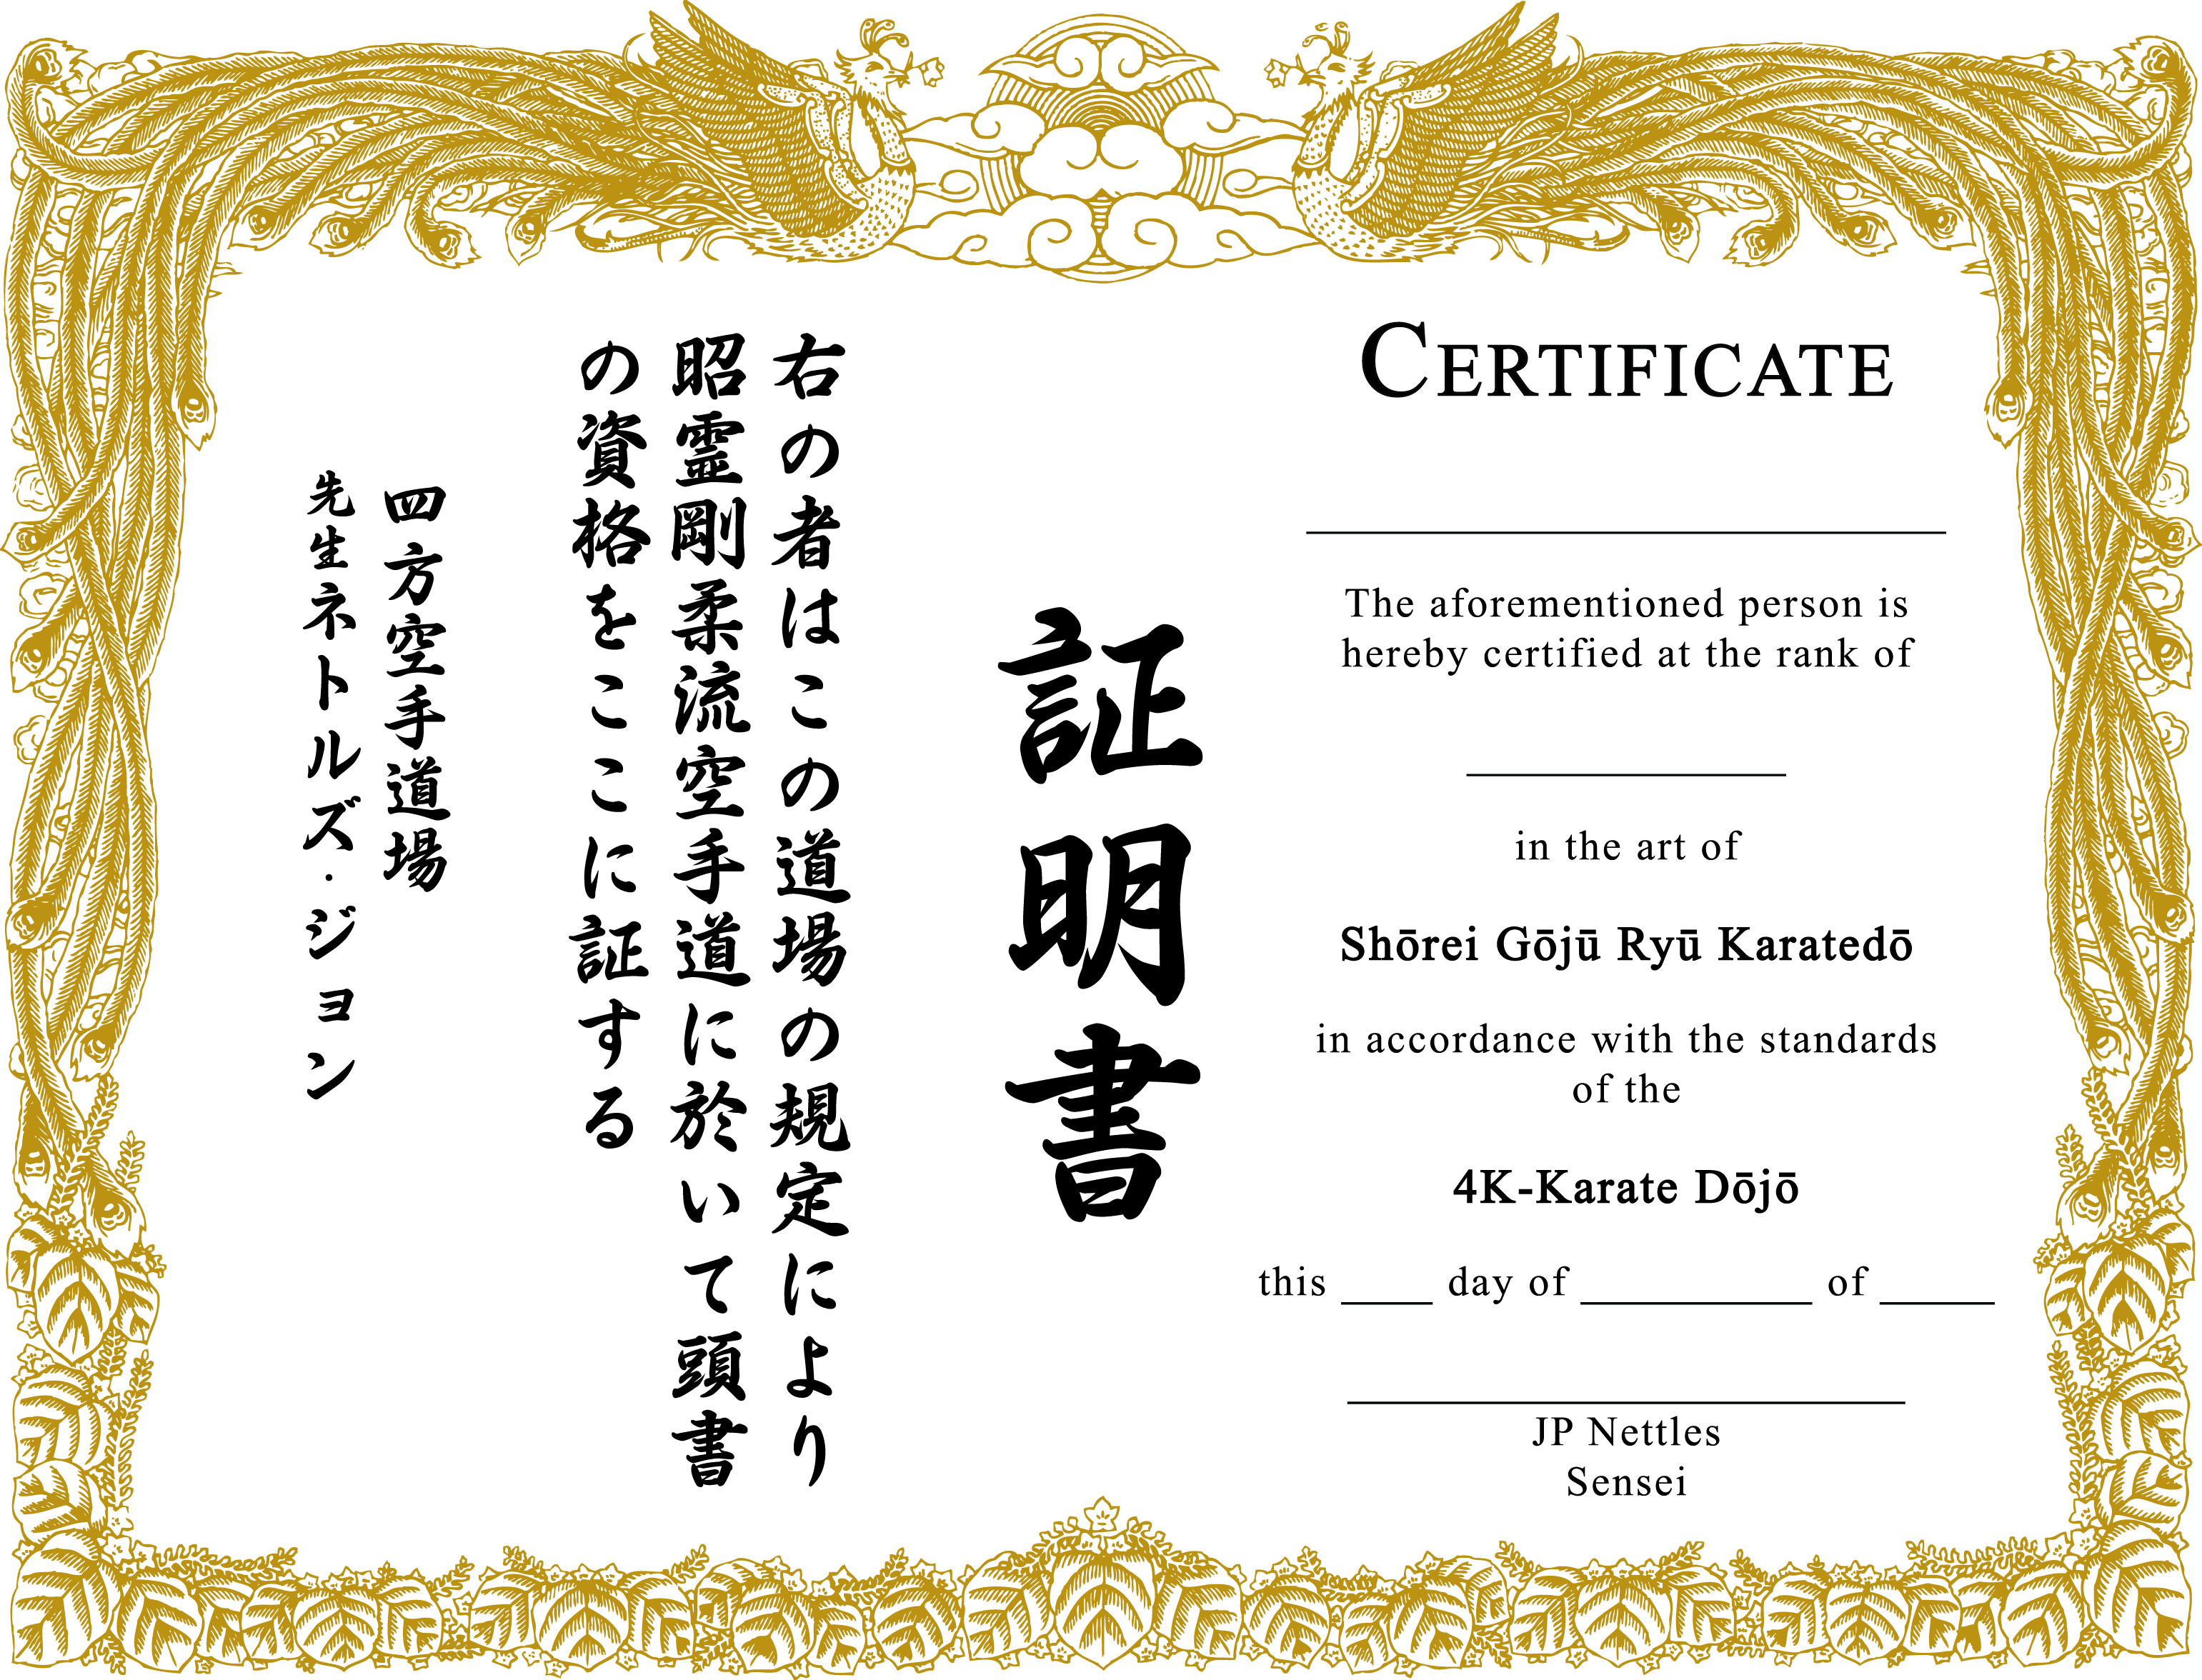 Download certificate template free. Karate clipart border